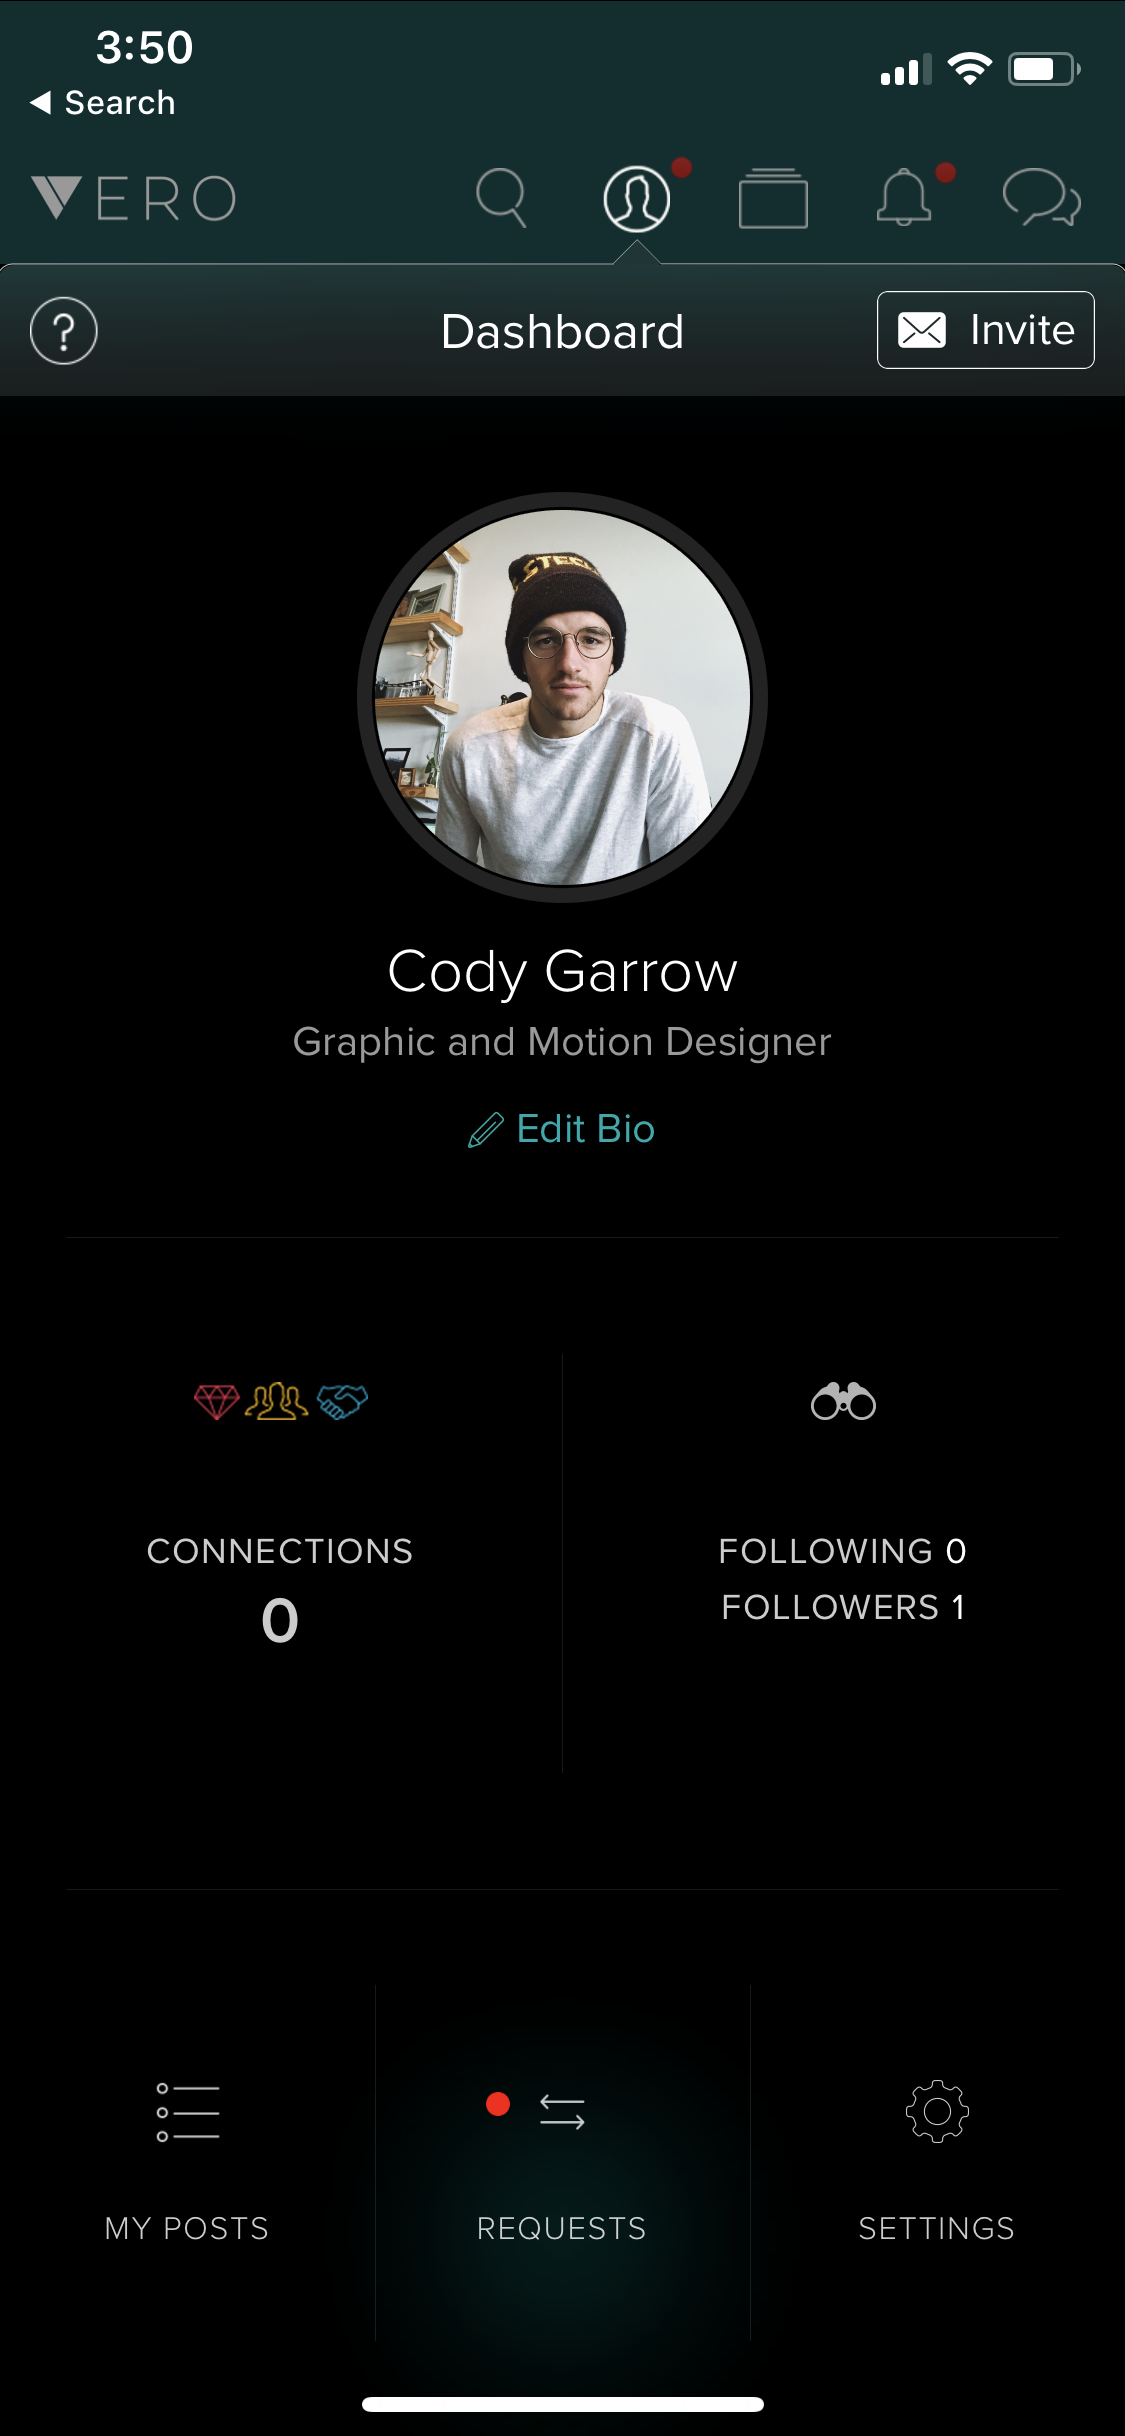 Vero Cody Garrow Profile